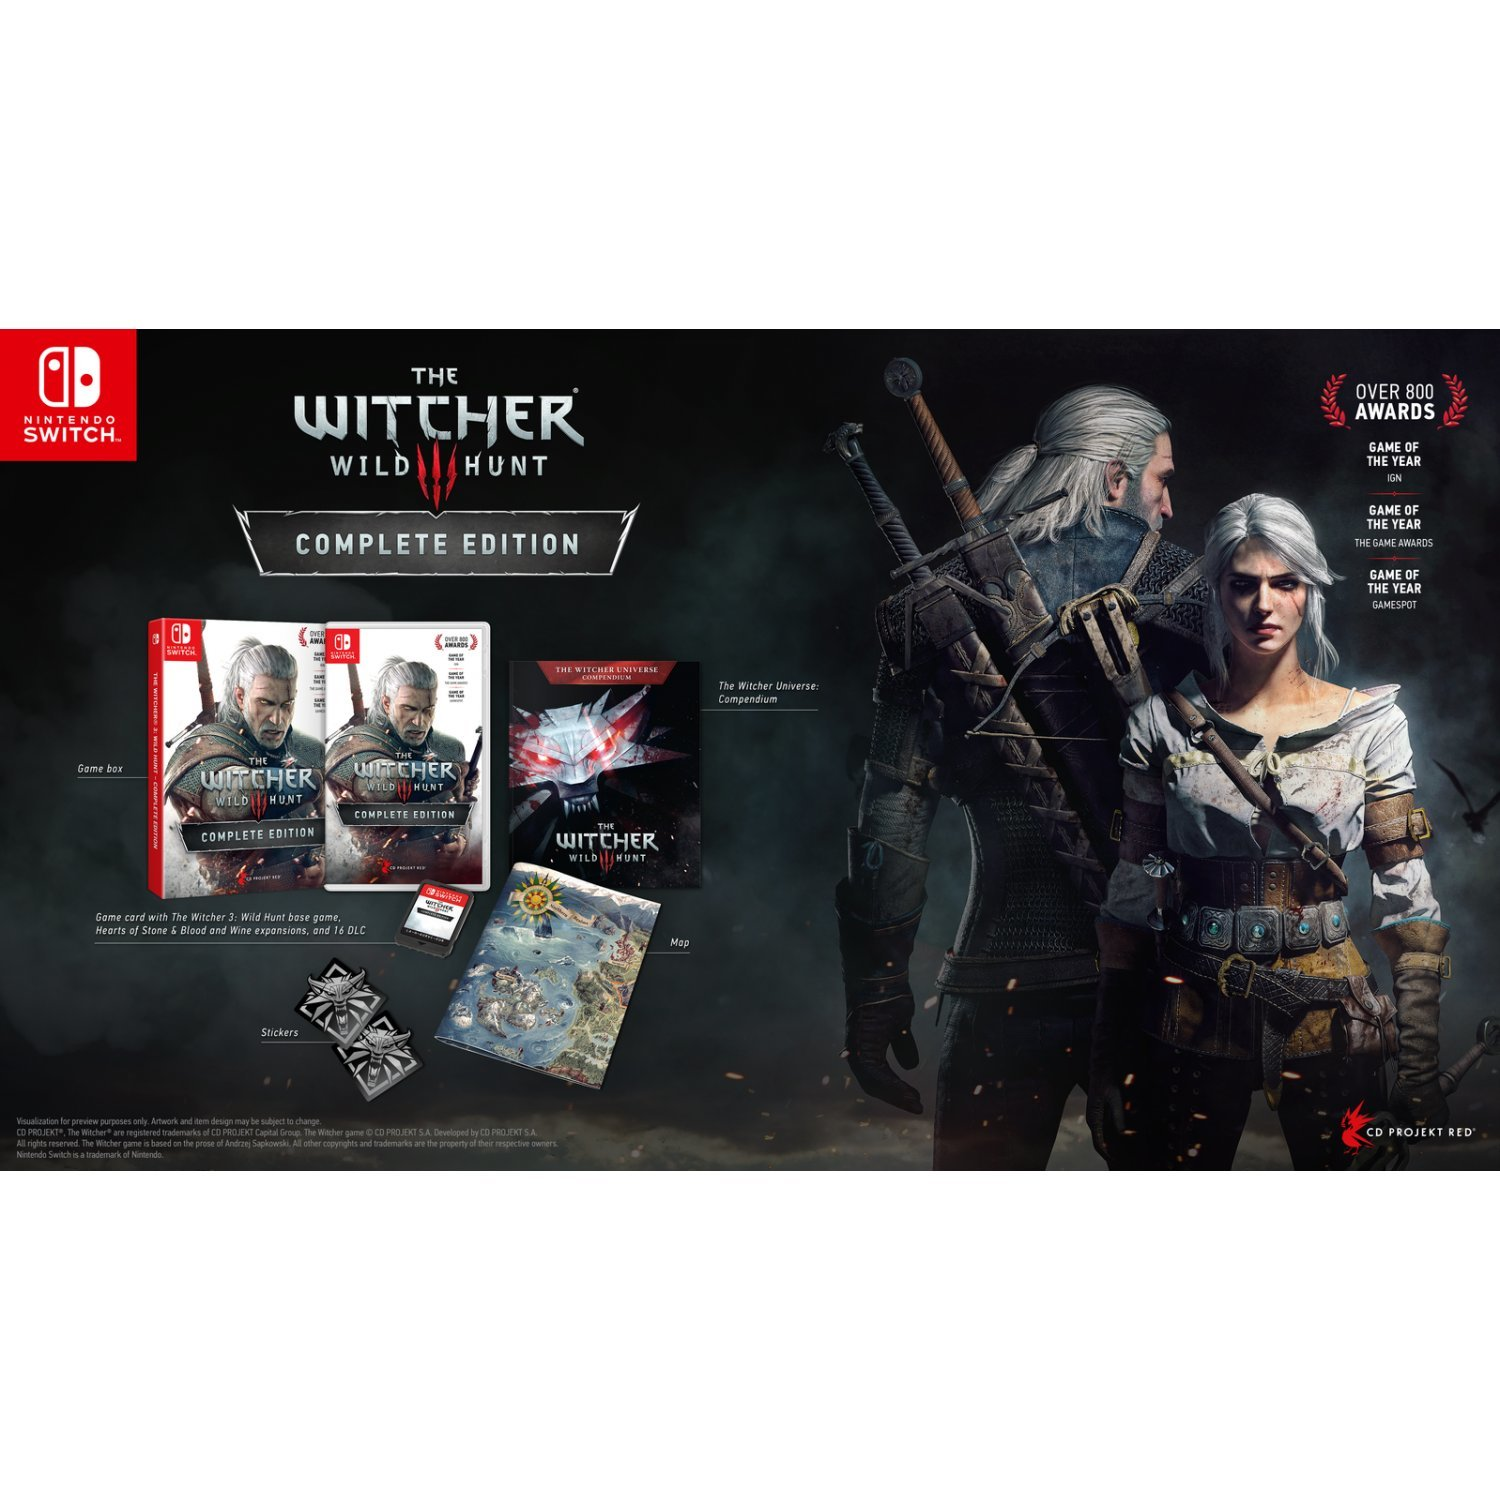 the-witcher-3-wild-hunt-complete-edition-multilanguage-597619.12.jpg